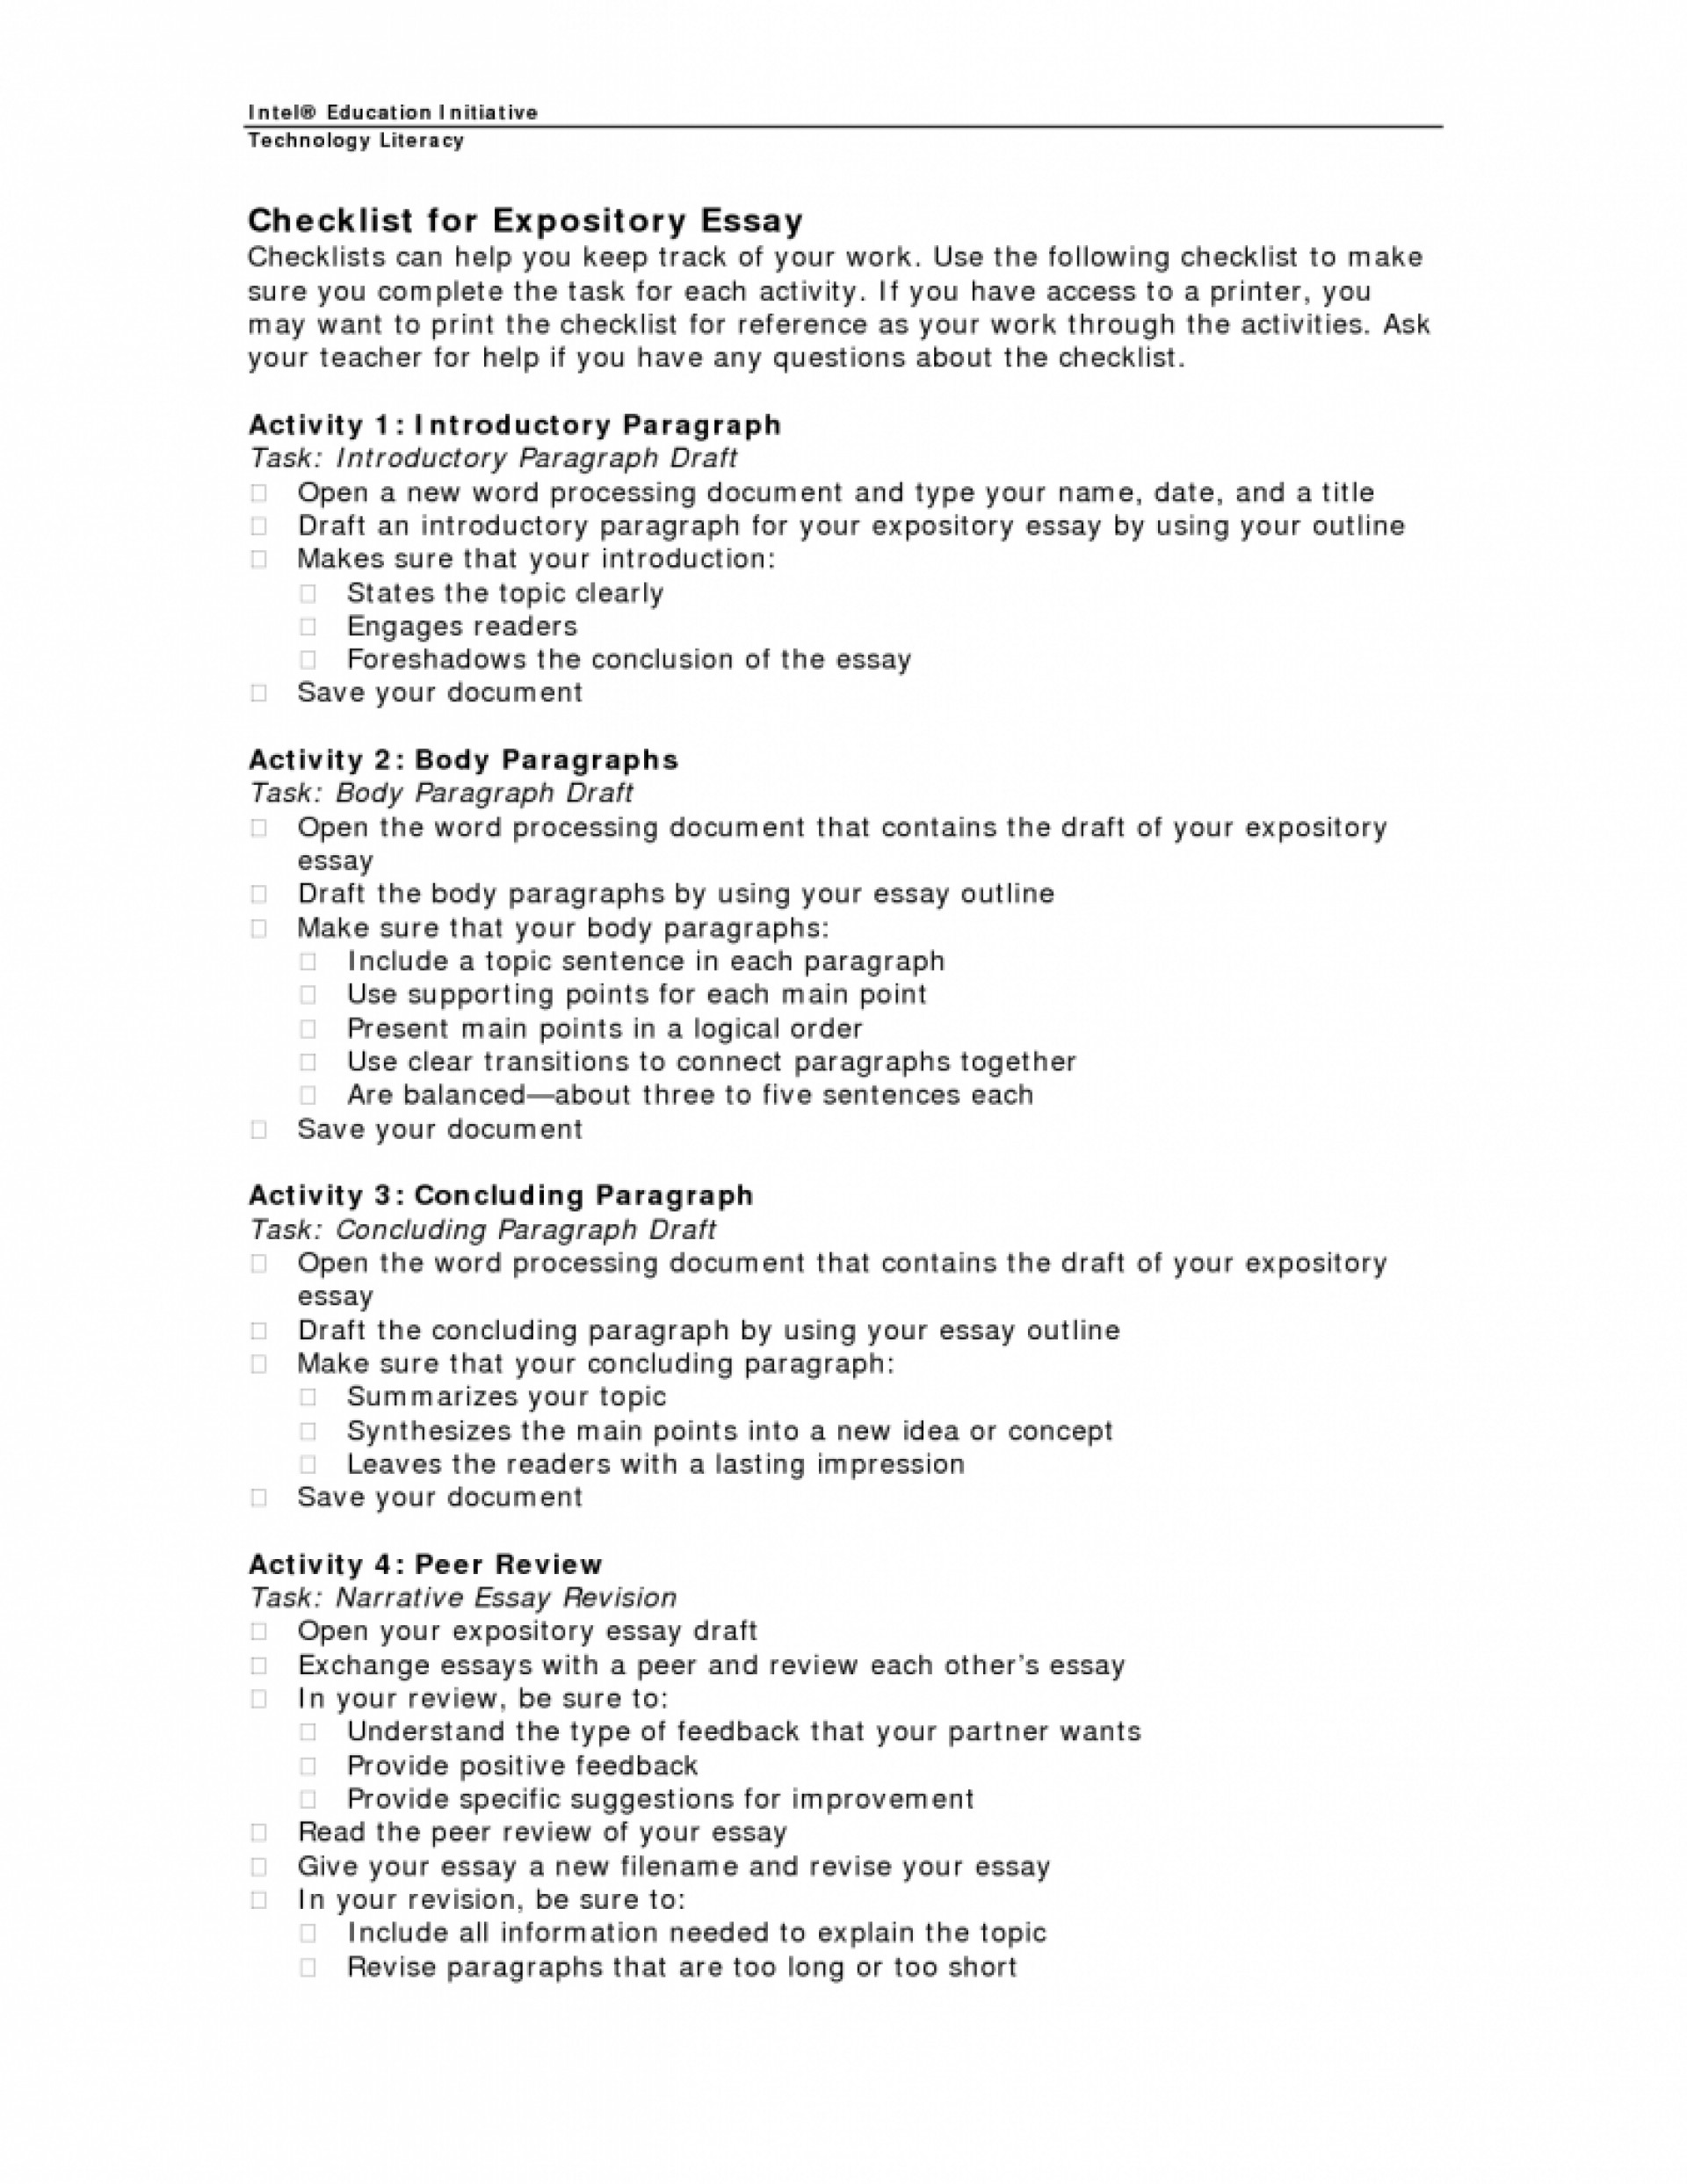 015 Essay Example Expository Checklist 791x1024 Informative Frightening Examples For High School Pdf 1920